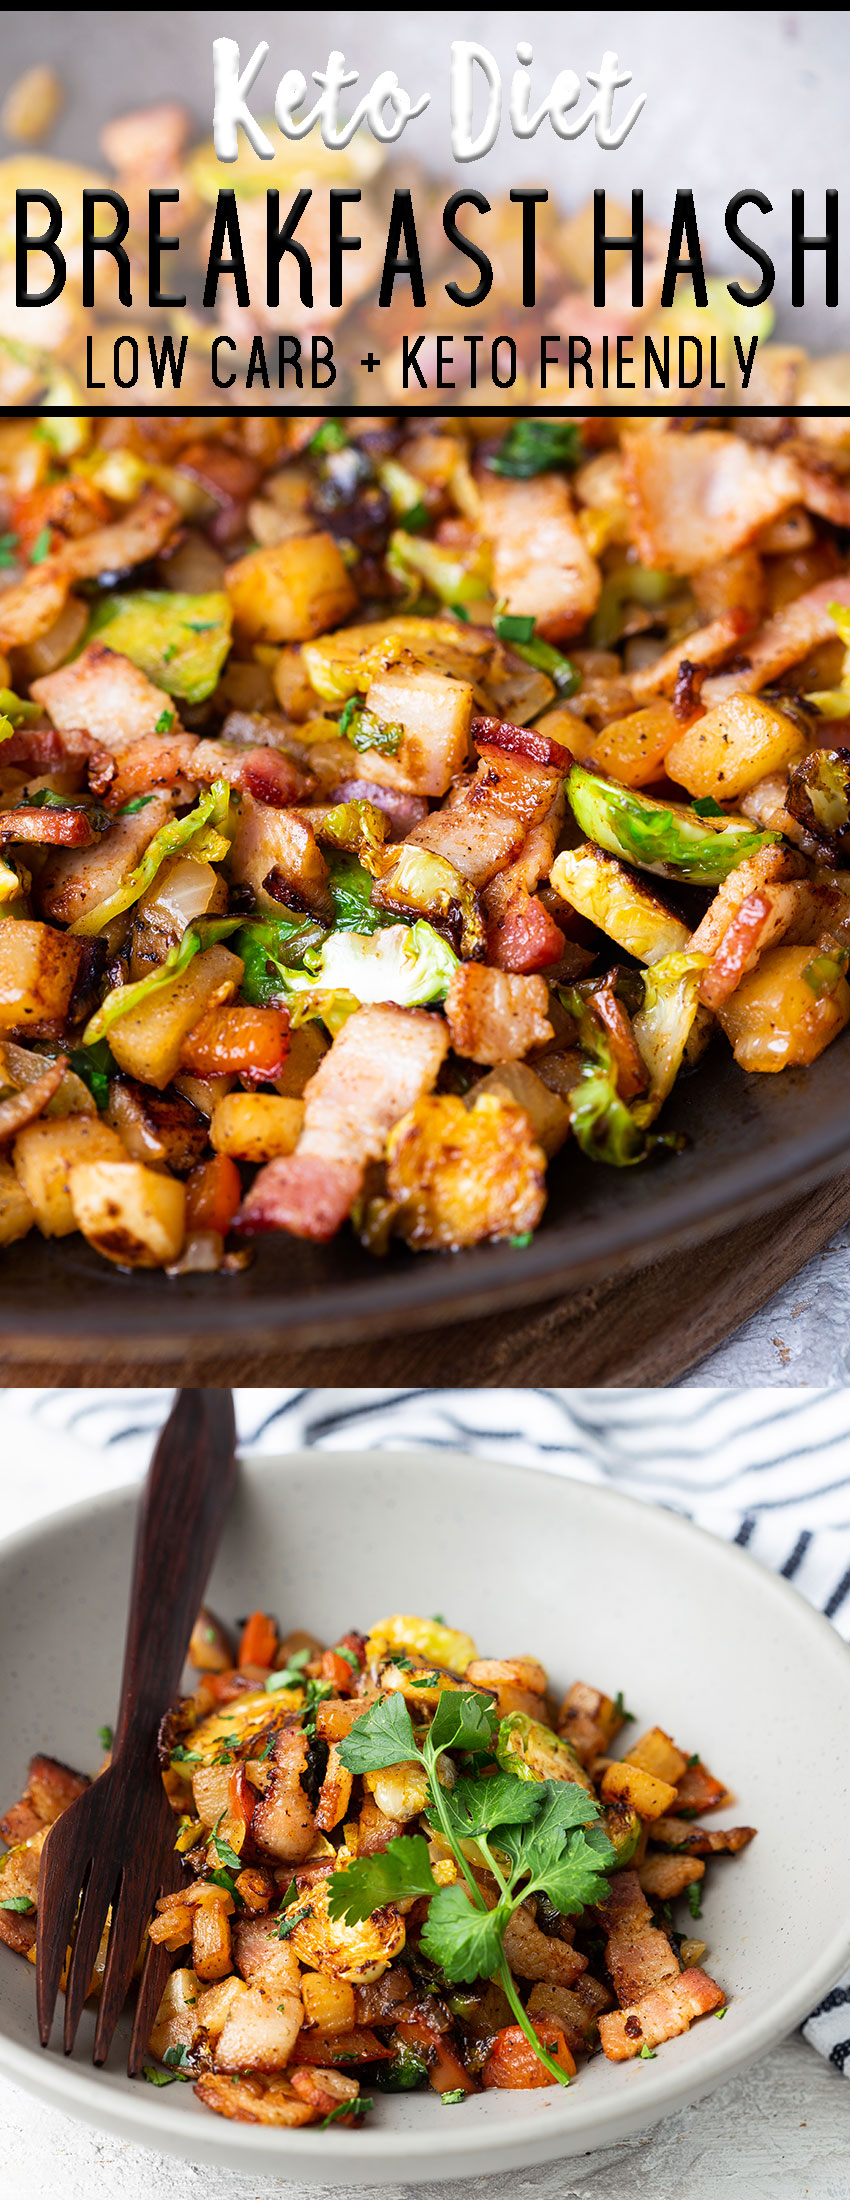 Keto diet breakfast hash pinterest pin